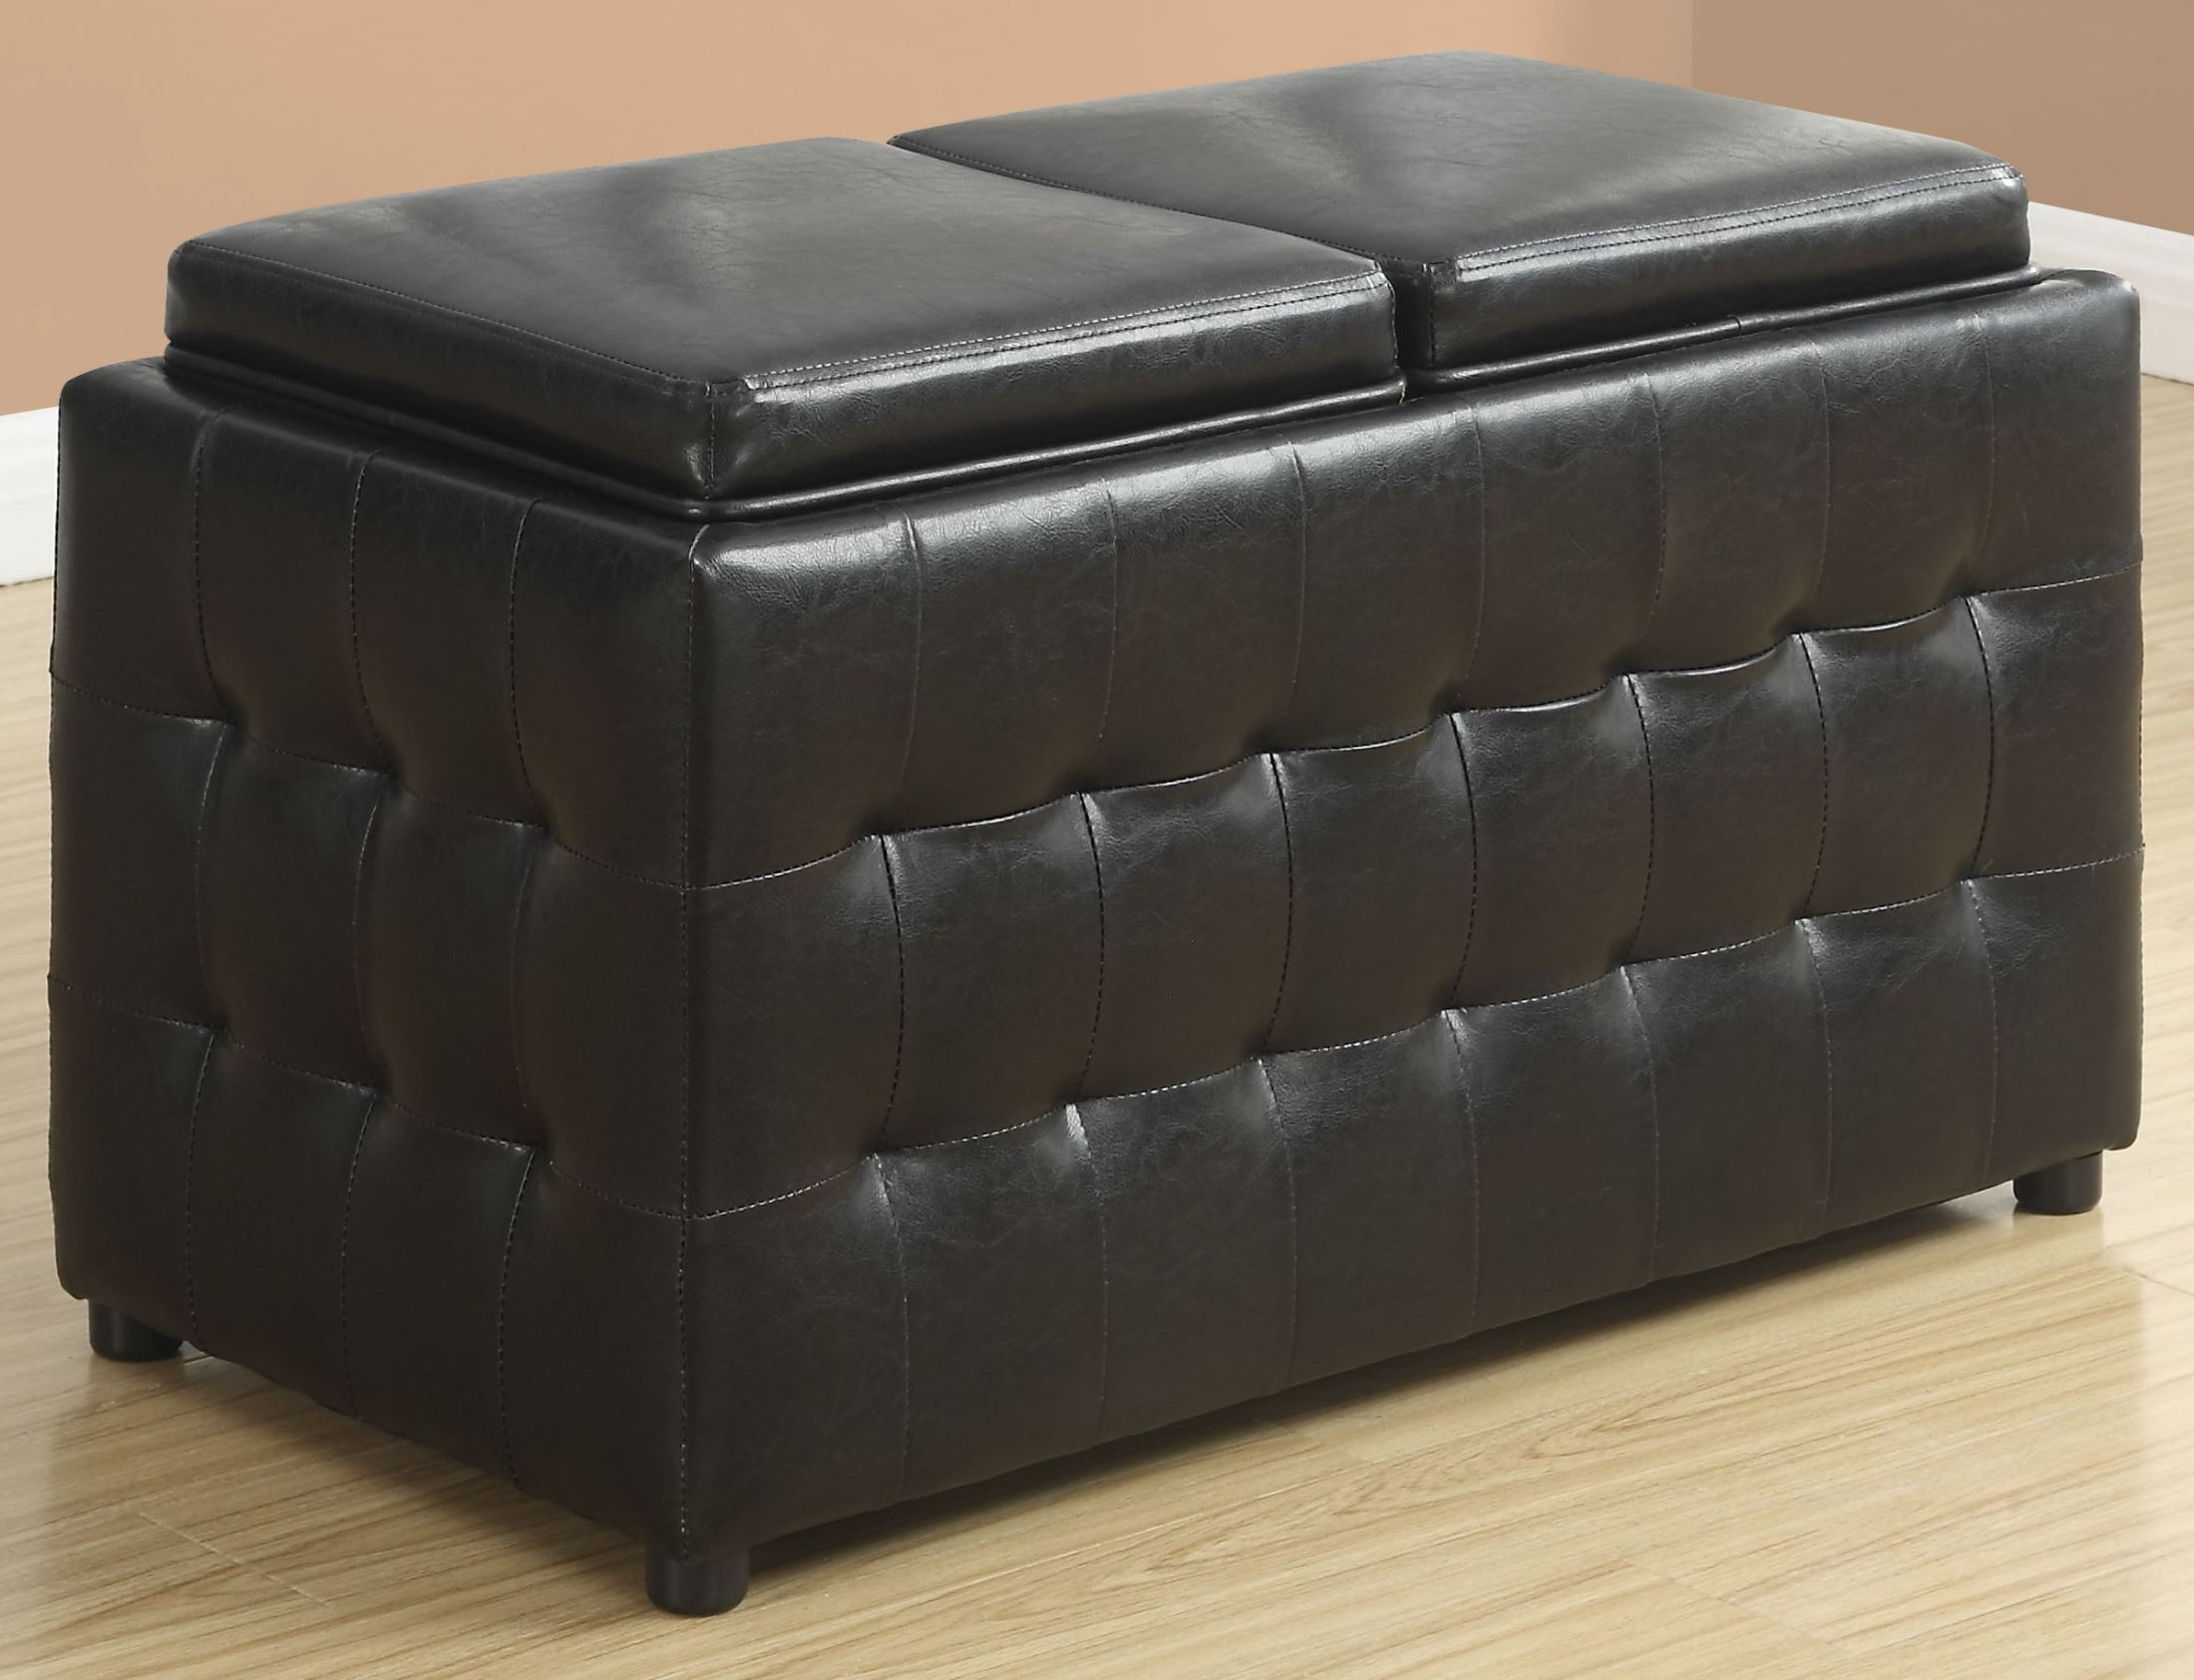 dark brown leather storage trays ottoman from monarch coleman furniture. Black Bedroom Furniture Sets. Home Design Ideas